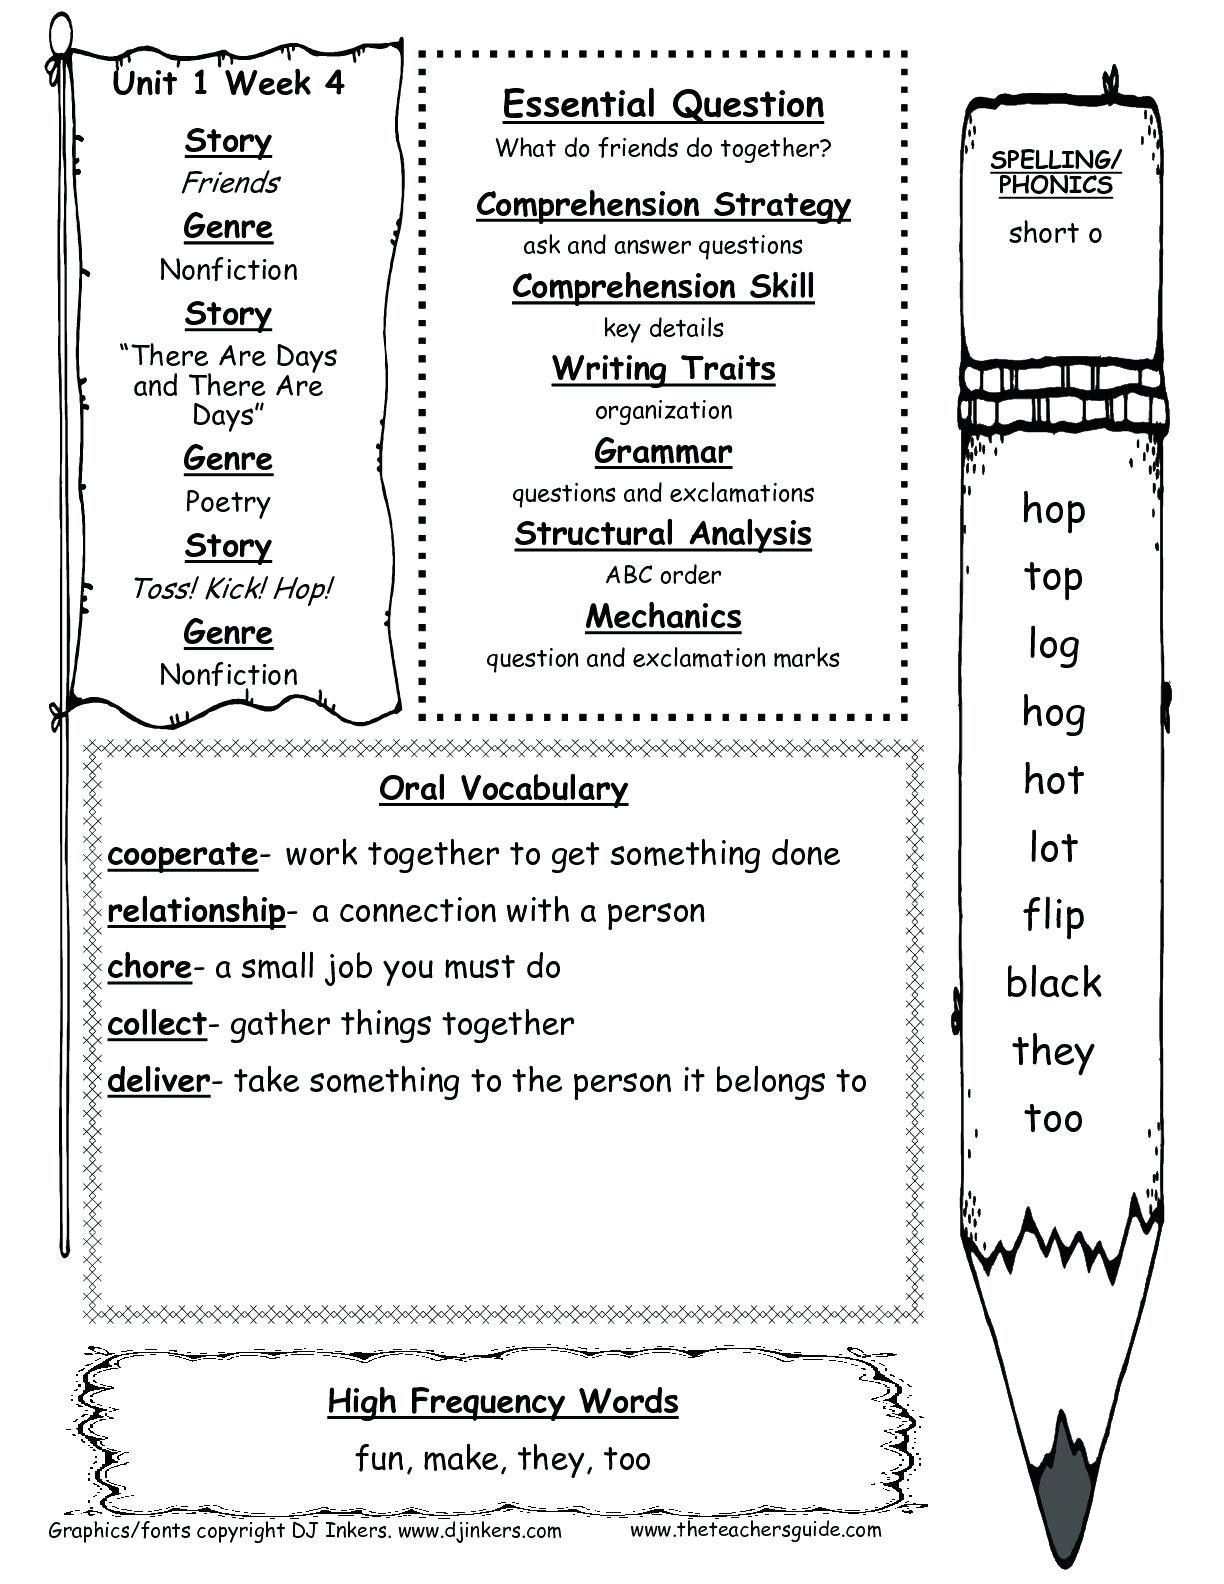 3 Free Math Worksheets Second Grade 2 Skip Counting Skip